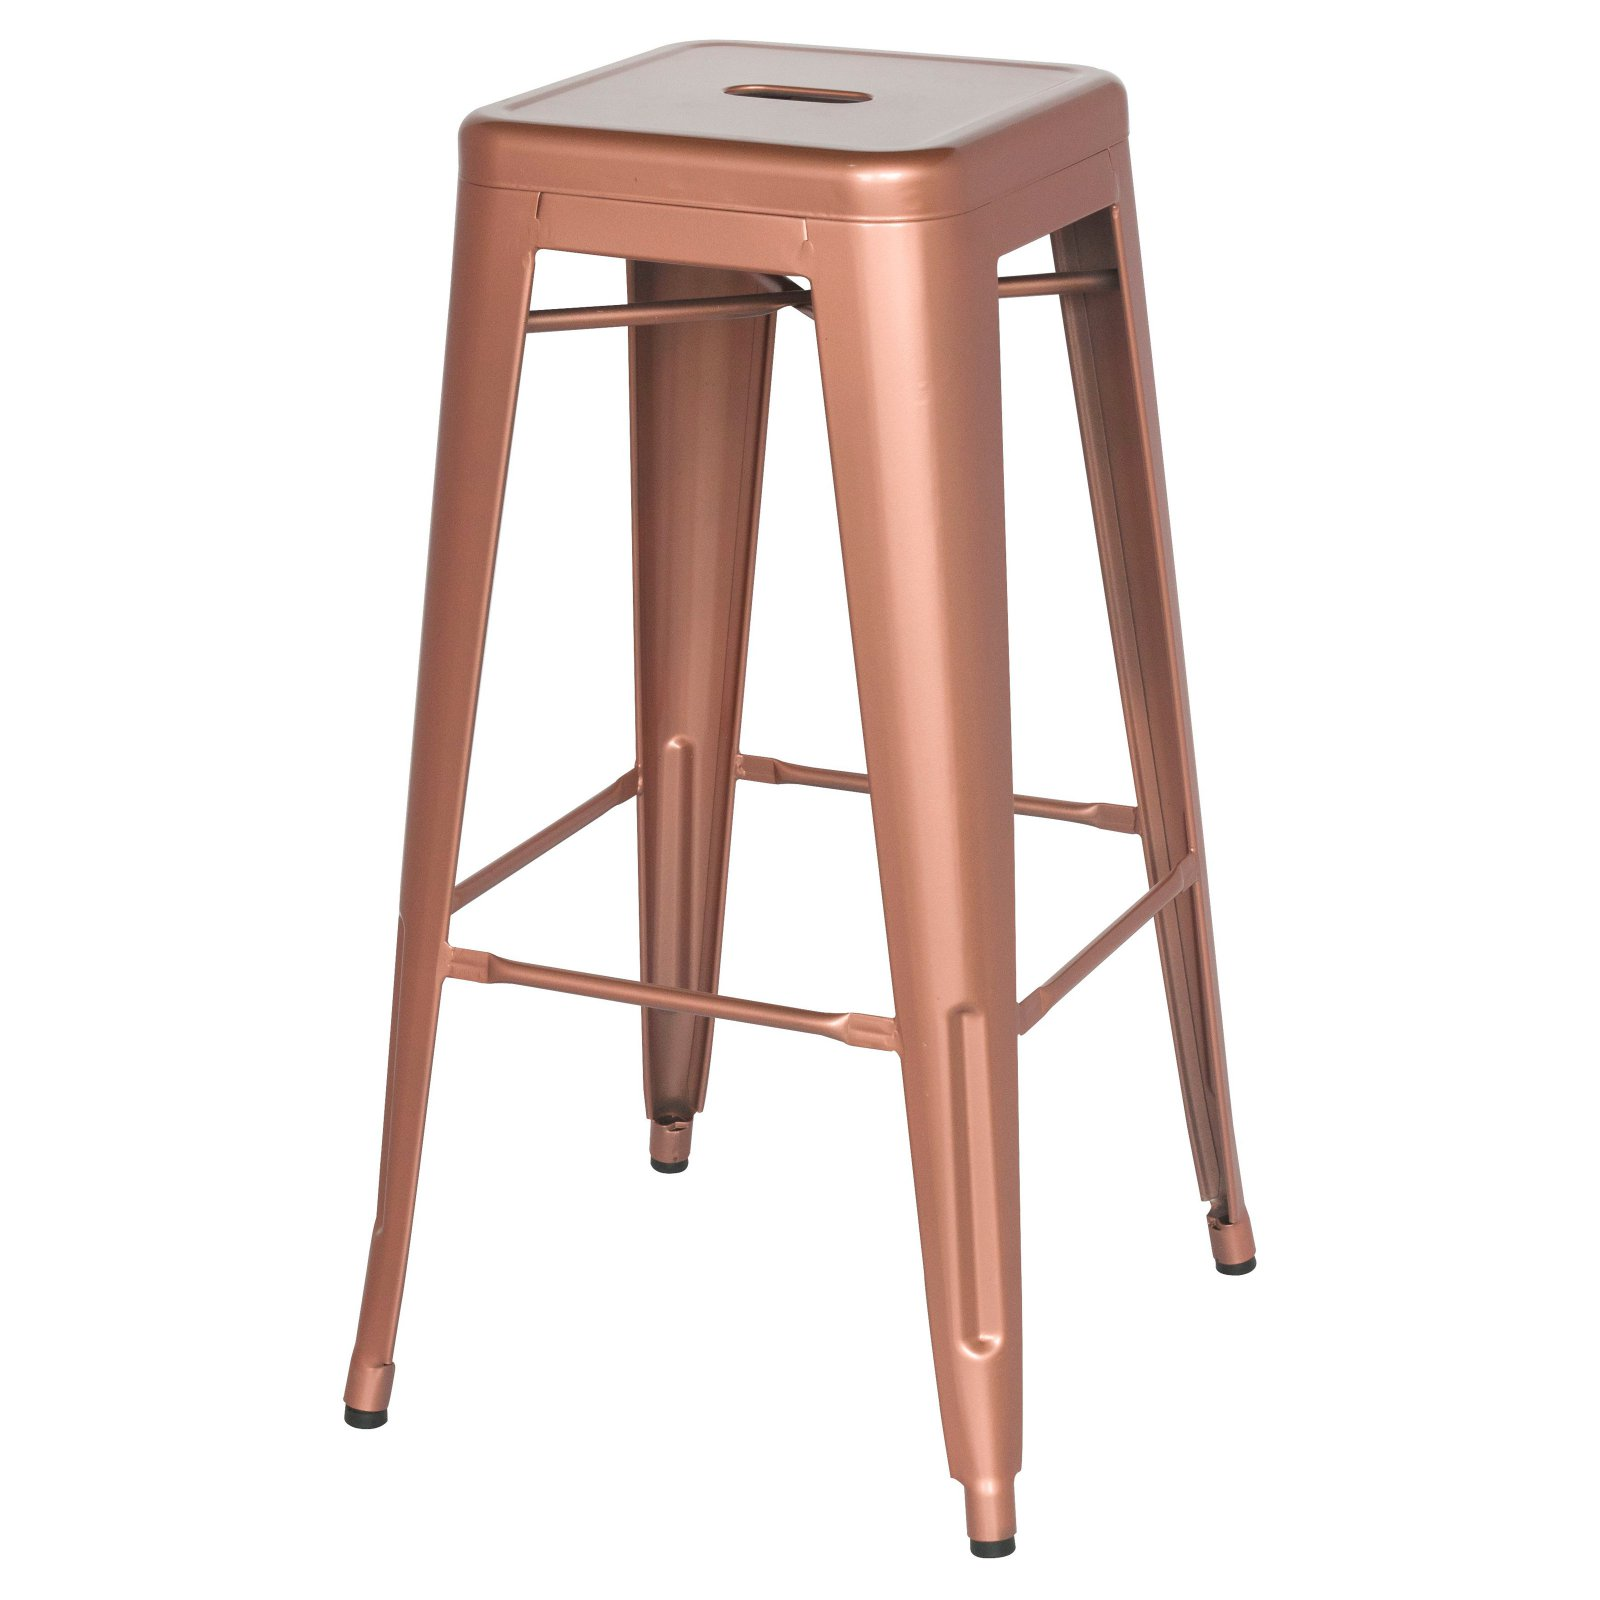 Chintaly Alfresco 8015 Backless 30 in. Bar Stool - Set of 4